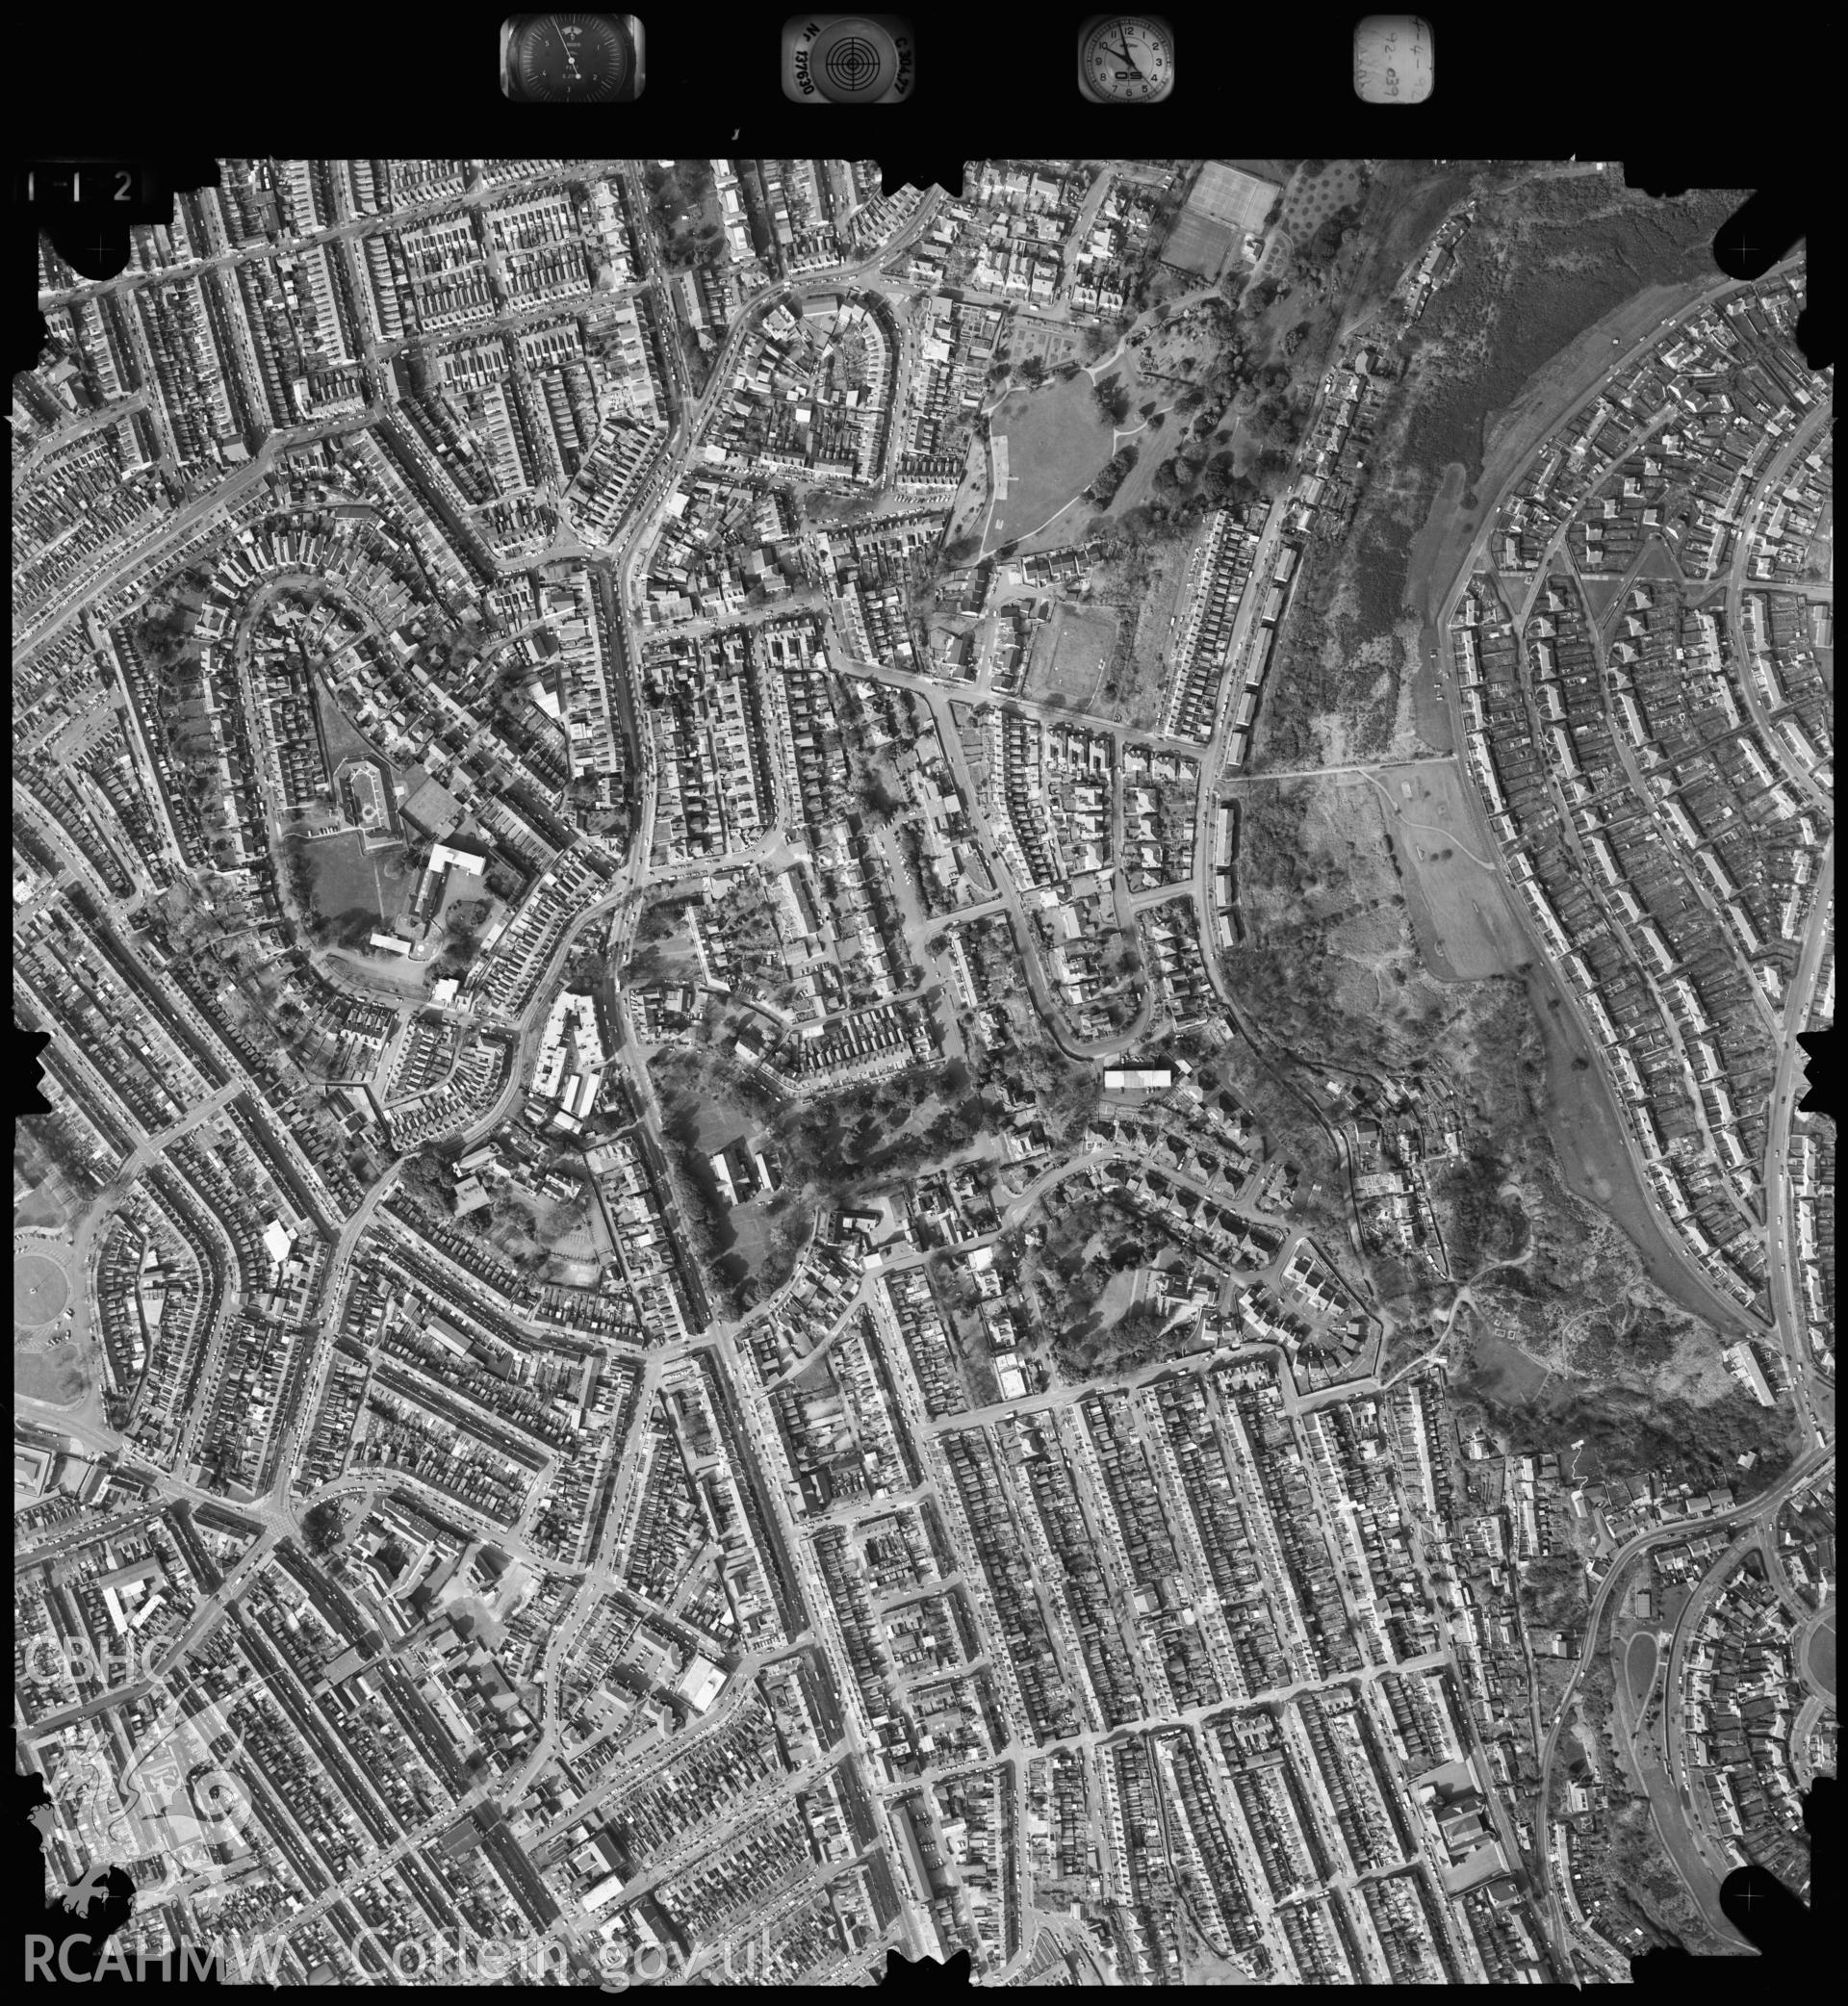 Digitized copy of an aerial photograph showing theSwansea area, taken by Ordnance Survey, 1993.